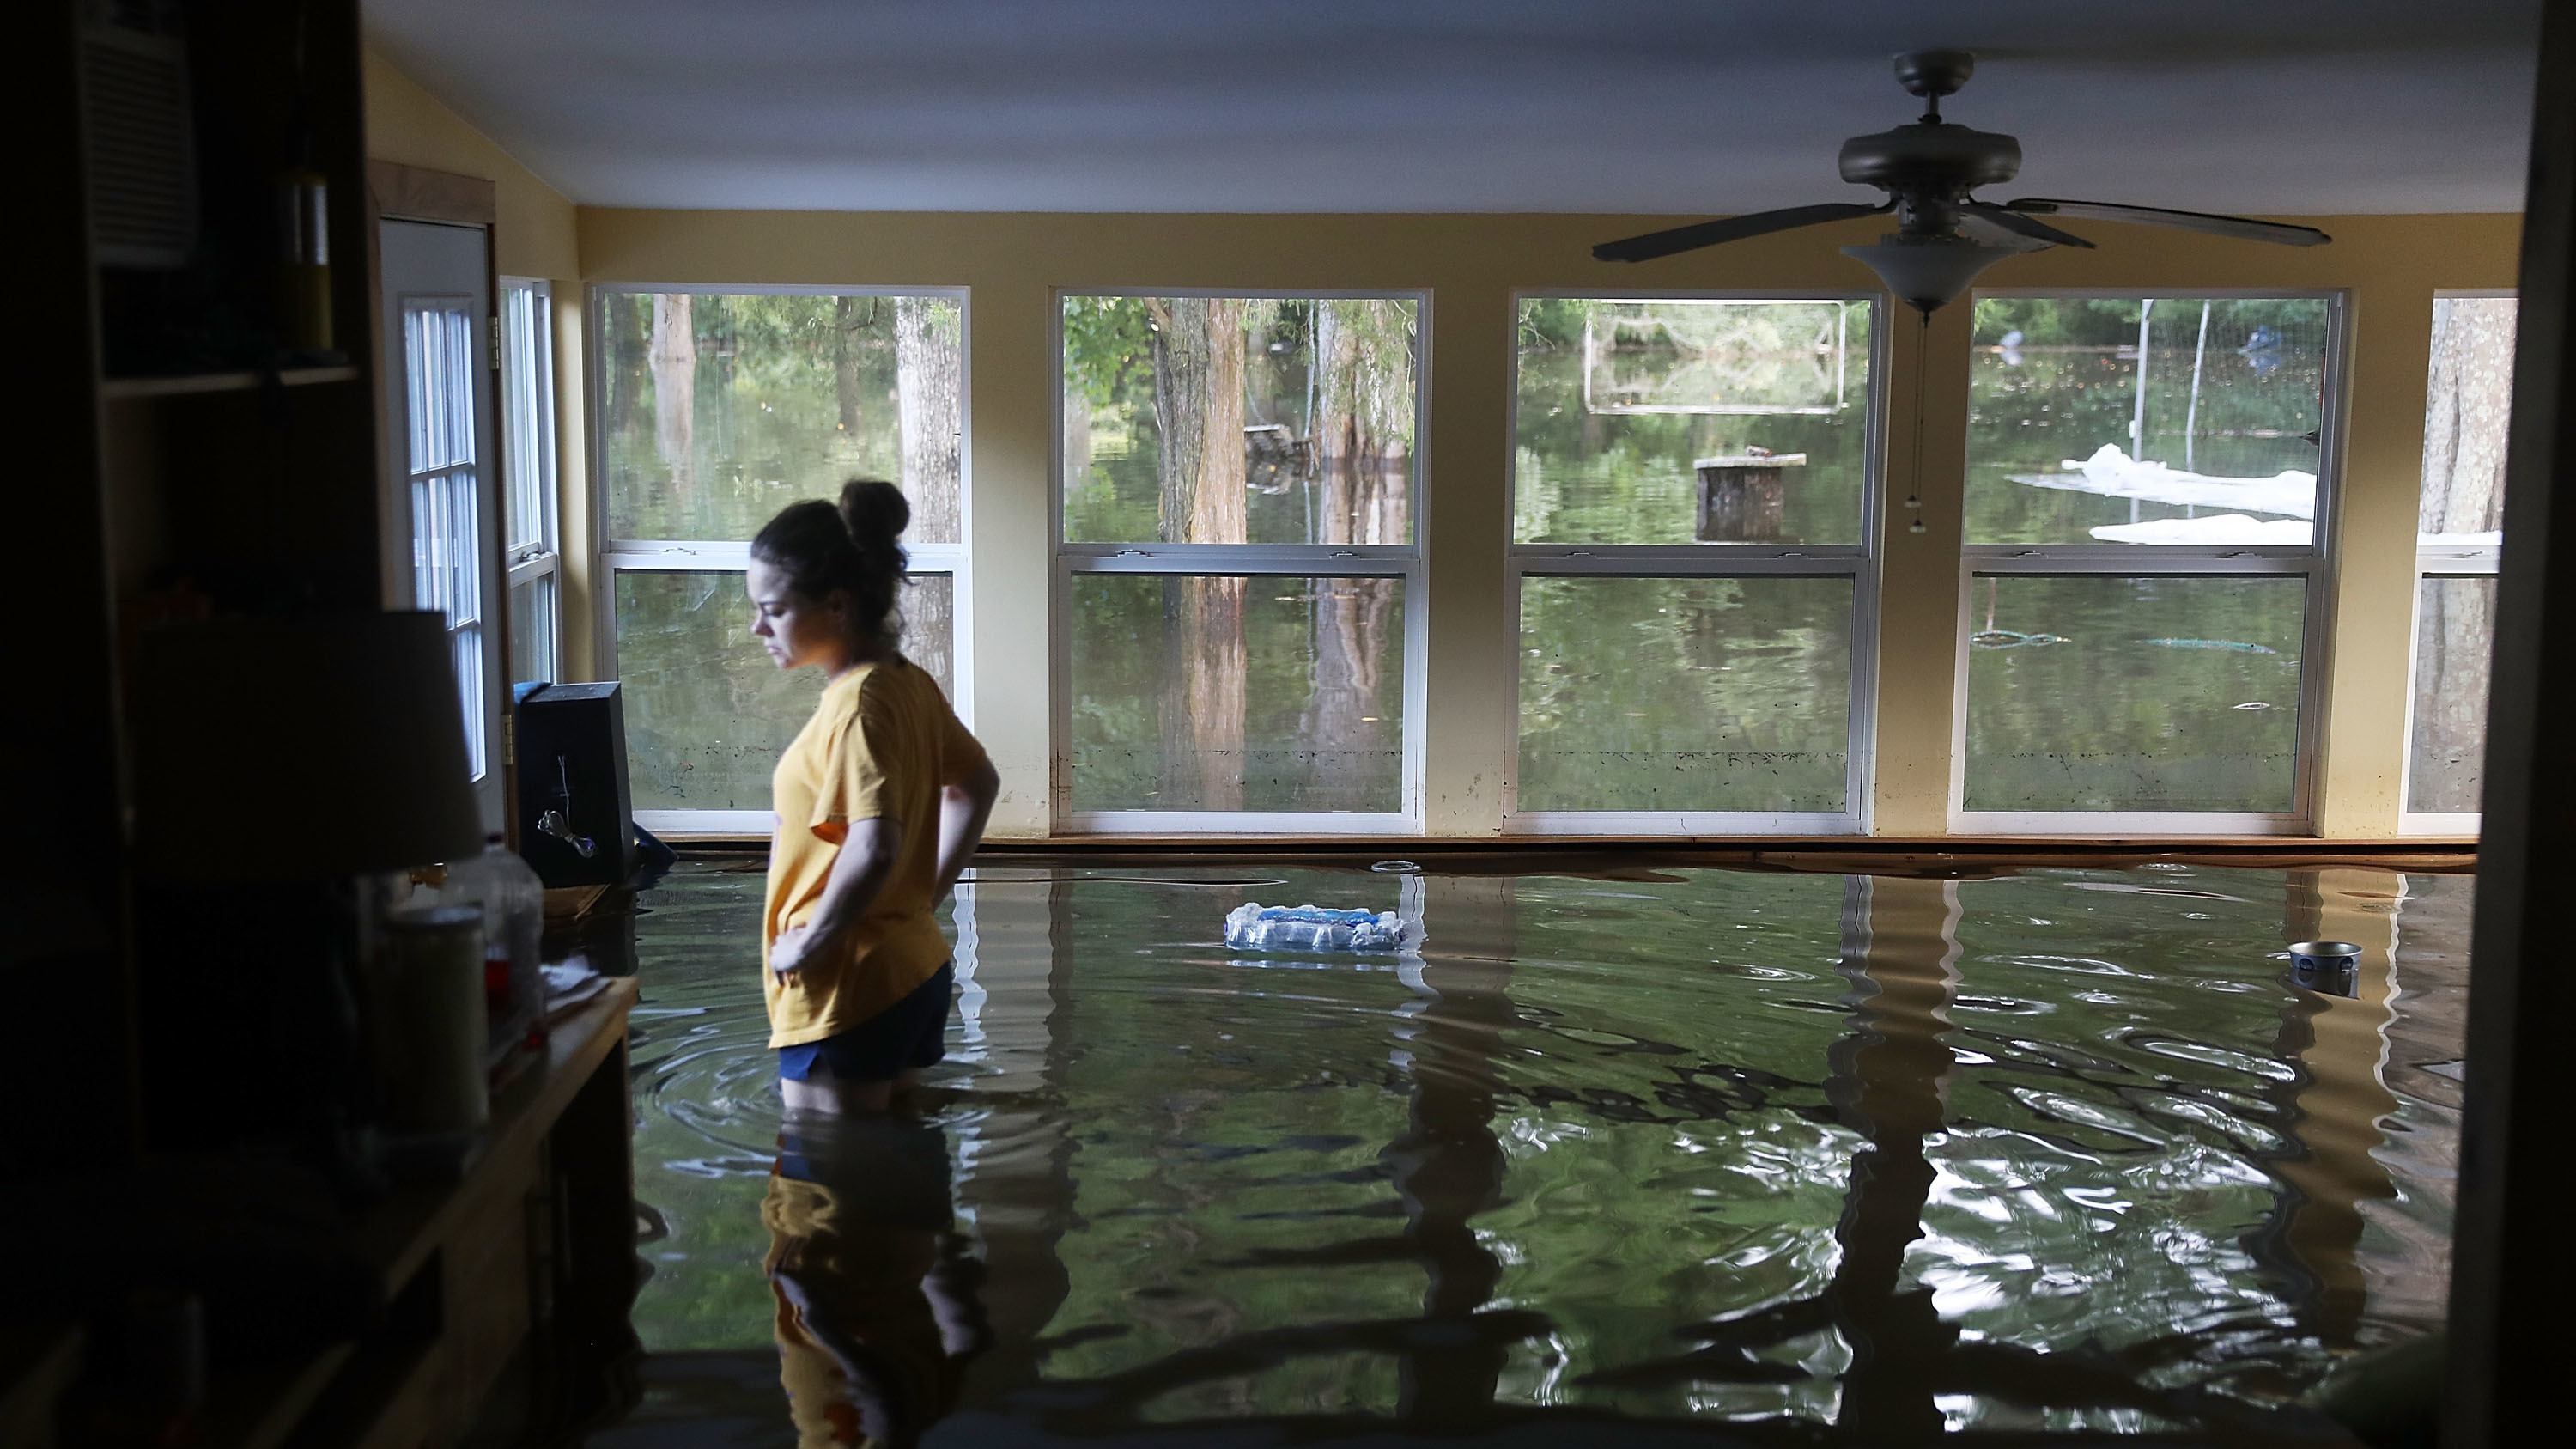 Leslie Andermann Gallagher surveys the flood damage to her home in Sorrento, La., on Wednesday. (Photo by Joe Raedle/Getty Images)